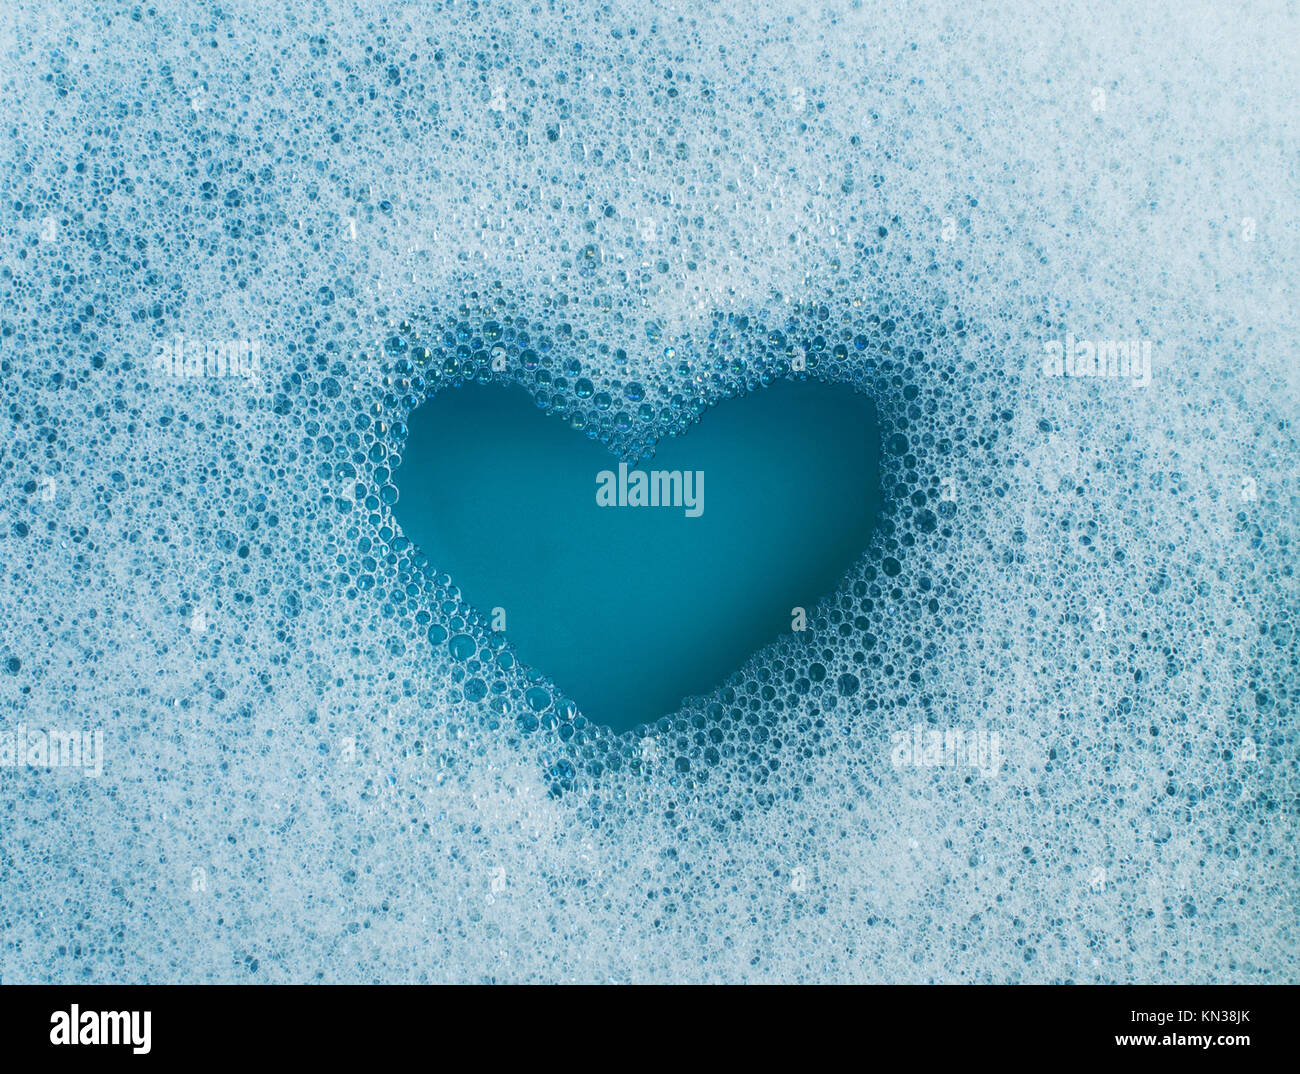 Heart shape created out of soap suds. Stock Photo